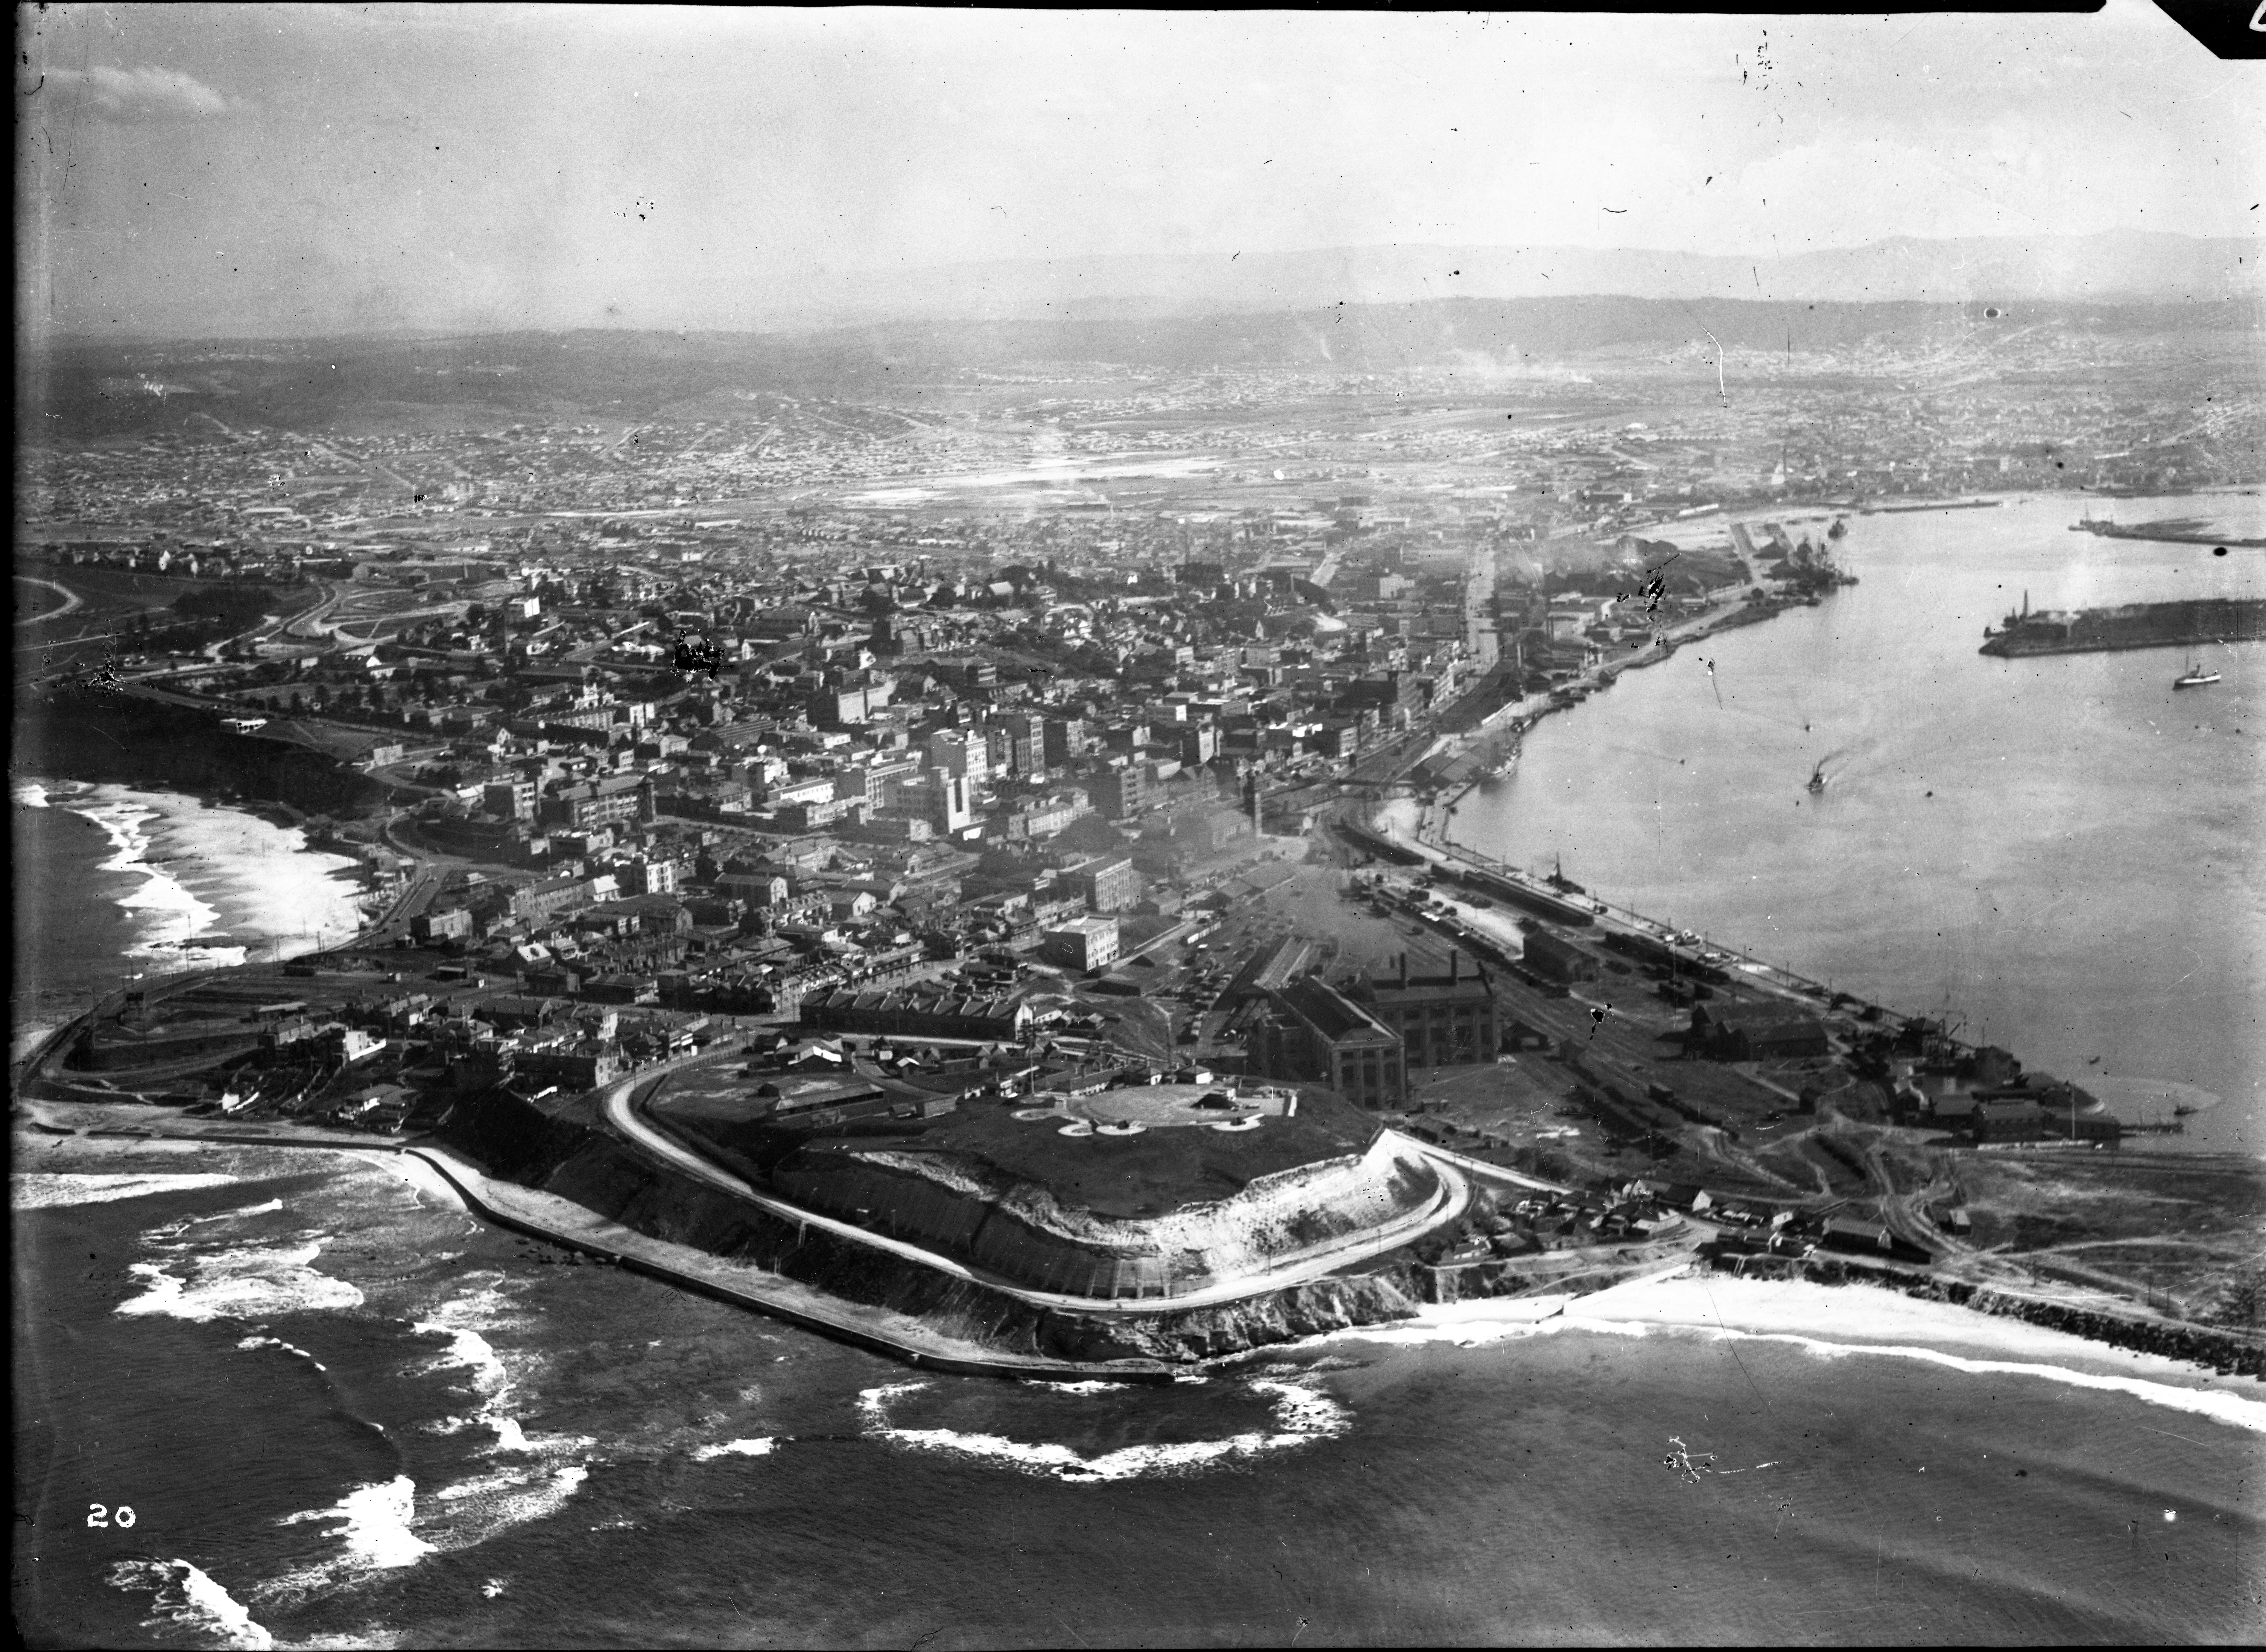 Newcastle, Signal Hill, Fort Scratchley, Zaara Street Power House, Port Hunter, The Dyke, The Basin (Photograph by Milton Kent Airplane Photographs, Sydney. Southern No. 70.4.-.20.1935.W.jpg)